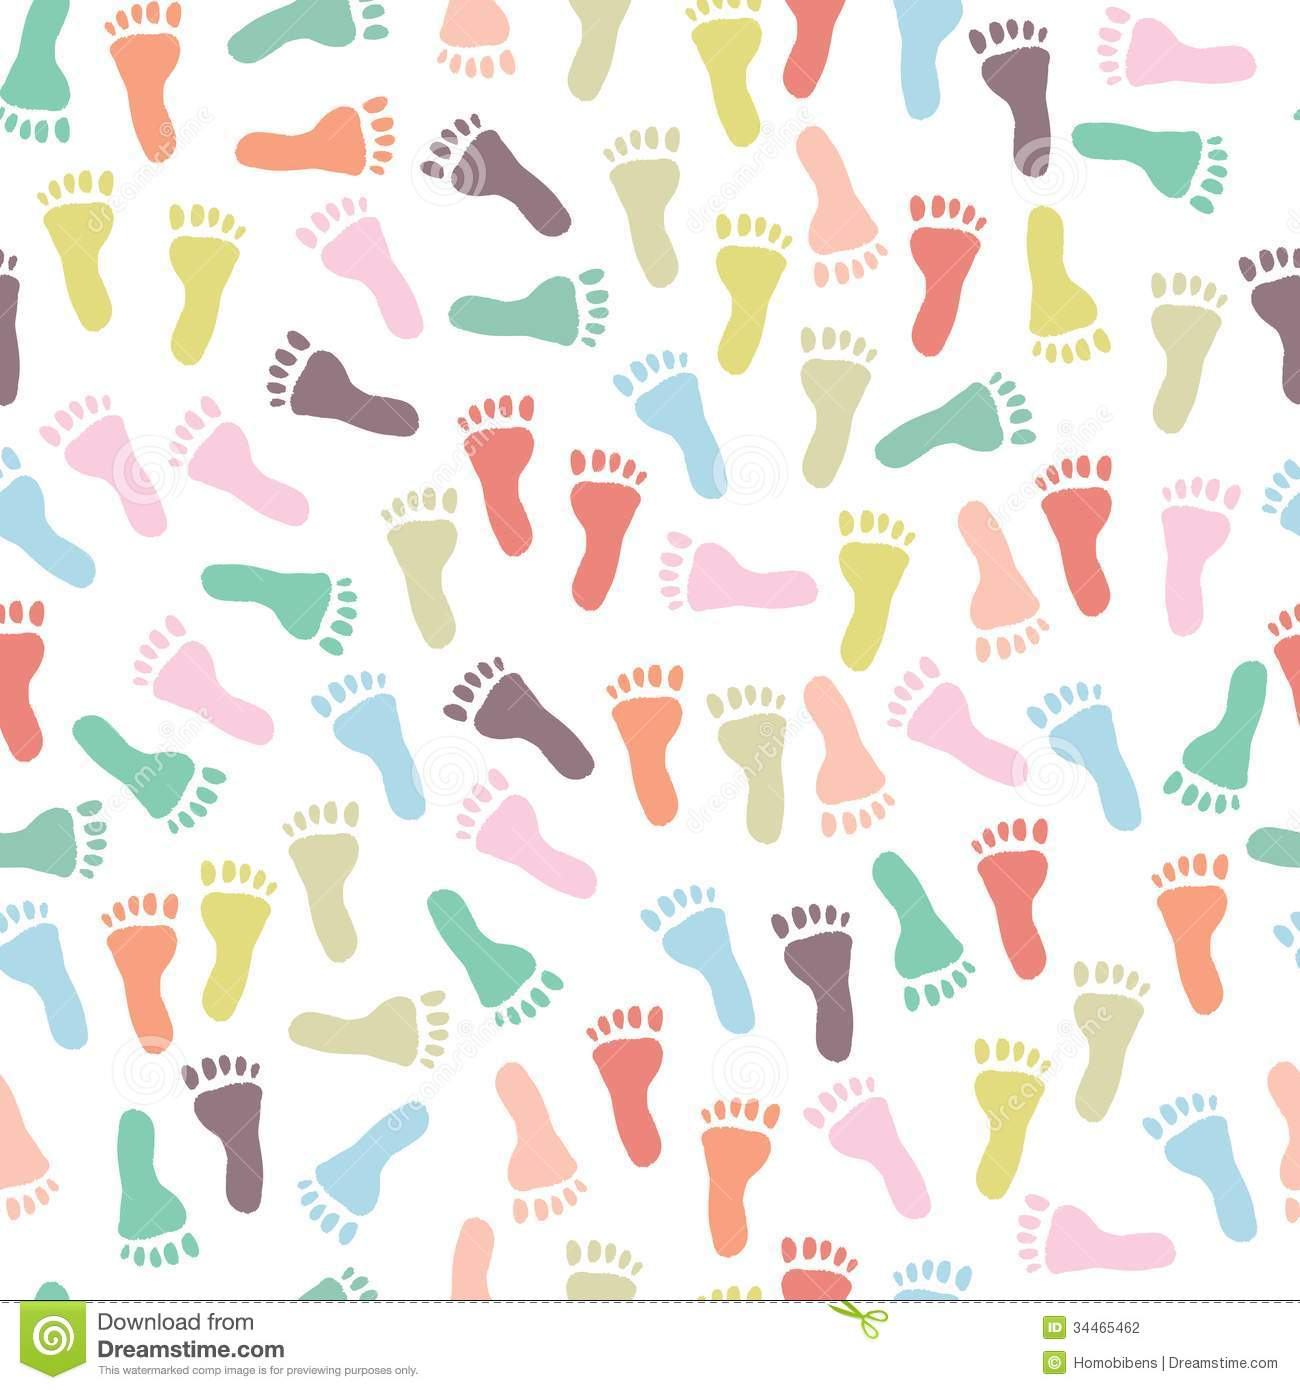 Seamless pattern with colorful footprints